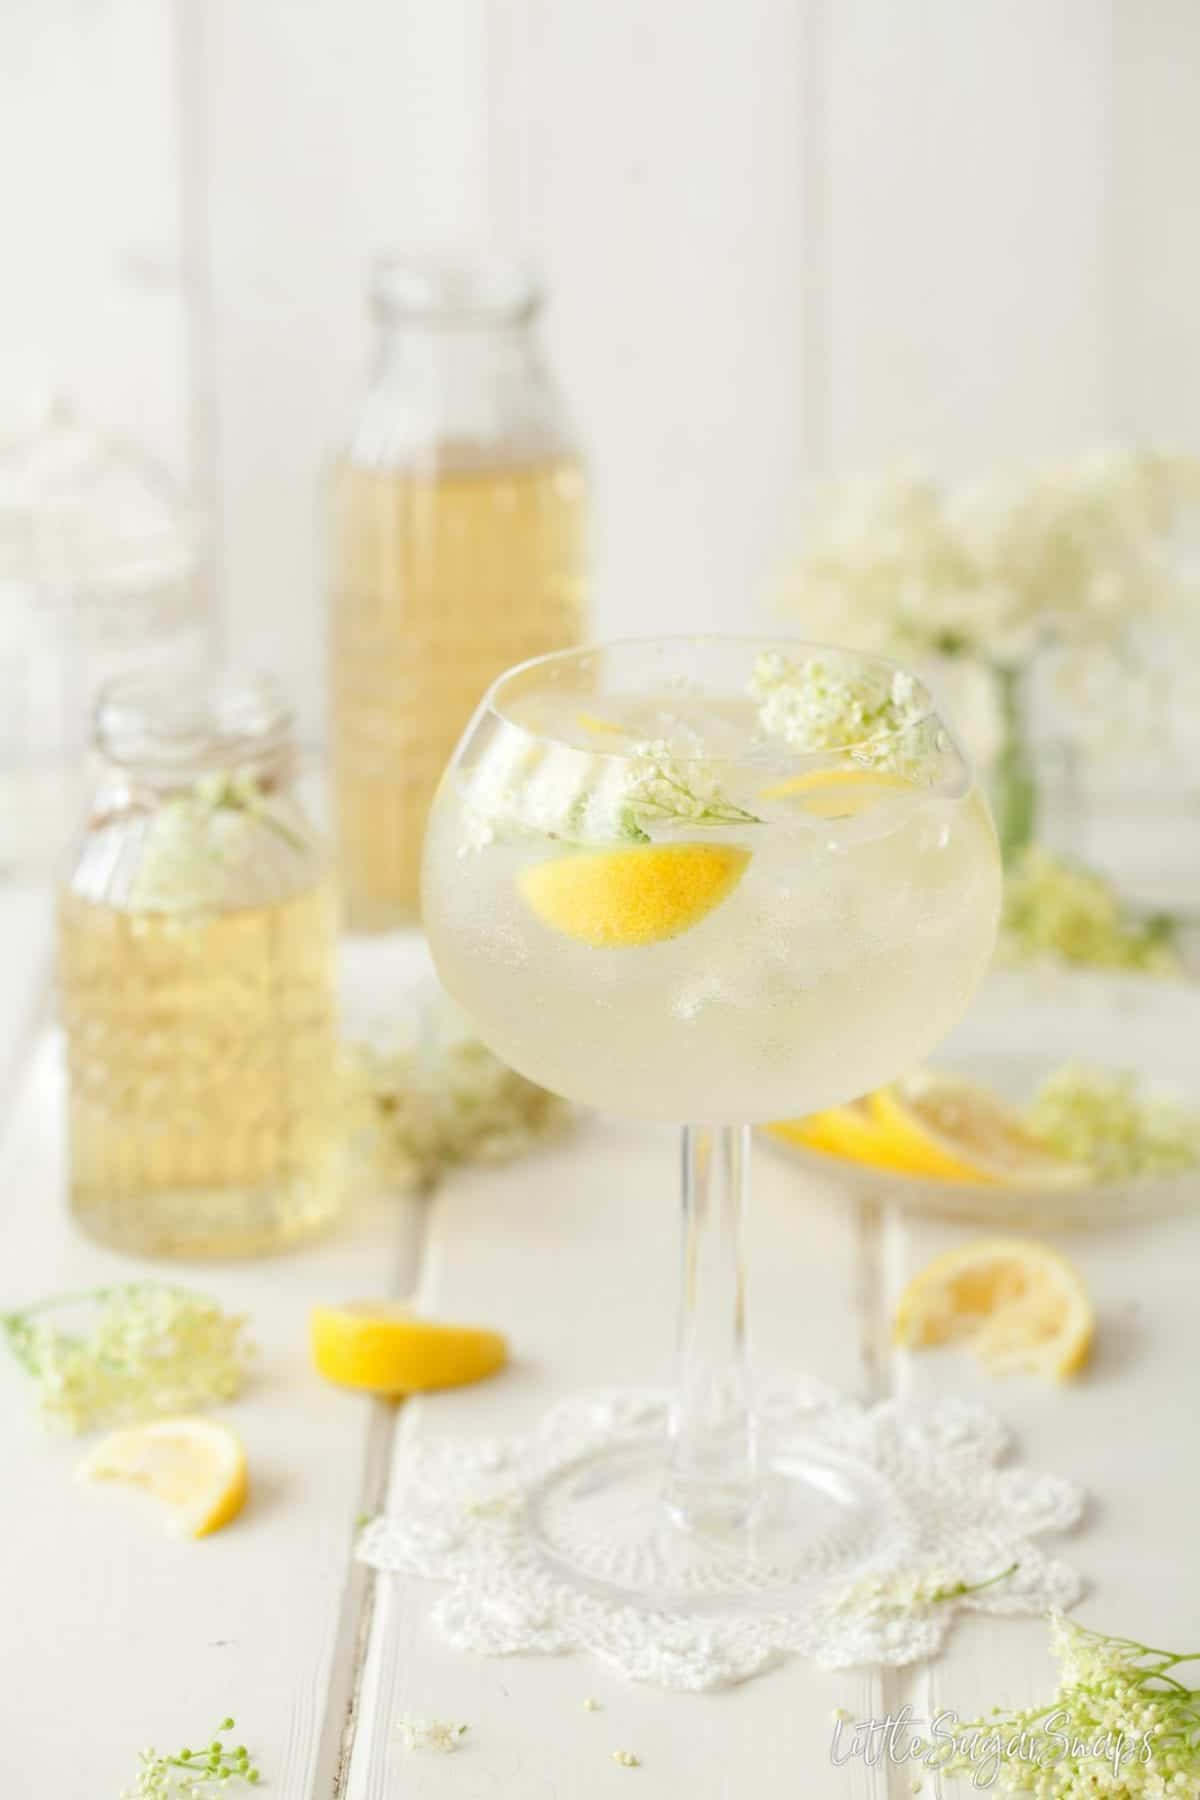 Summer Gin and Tonic with Elderflower & Lemon